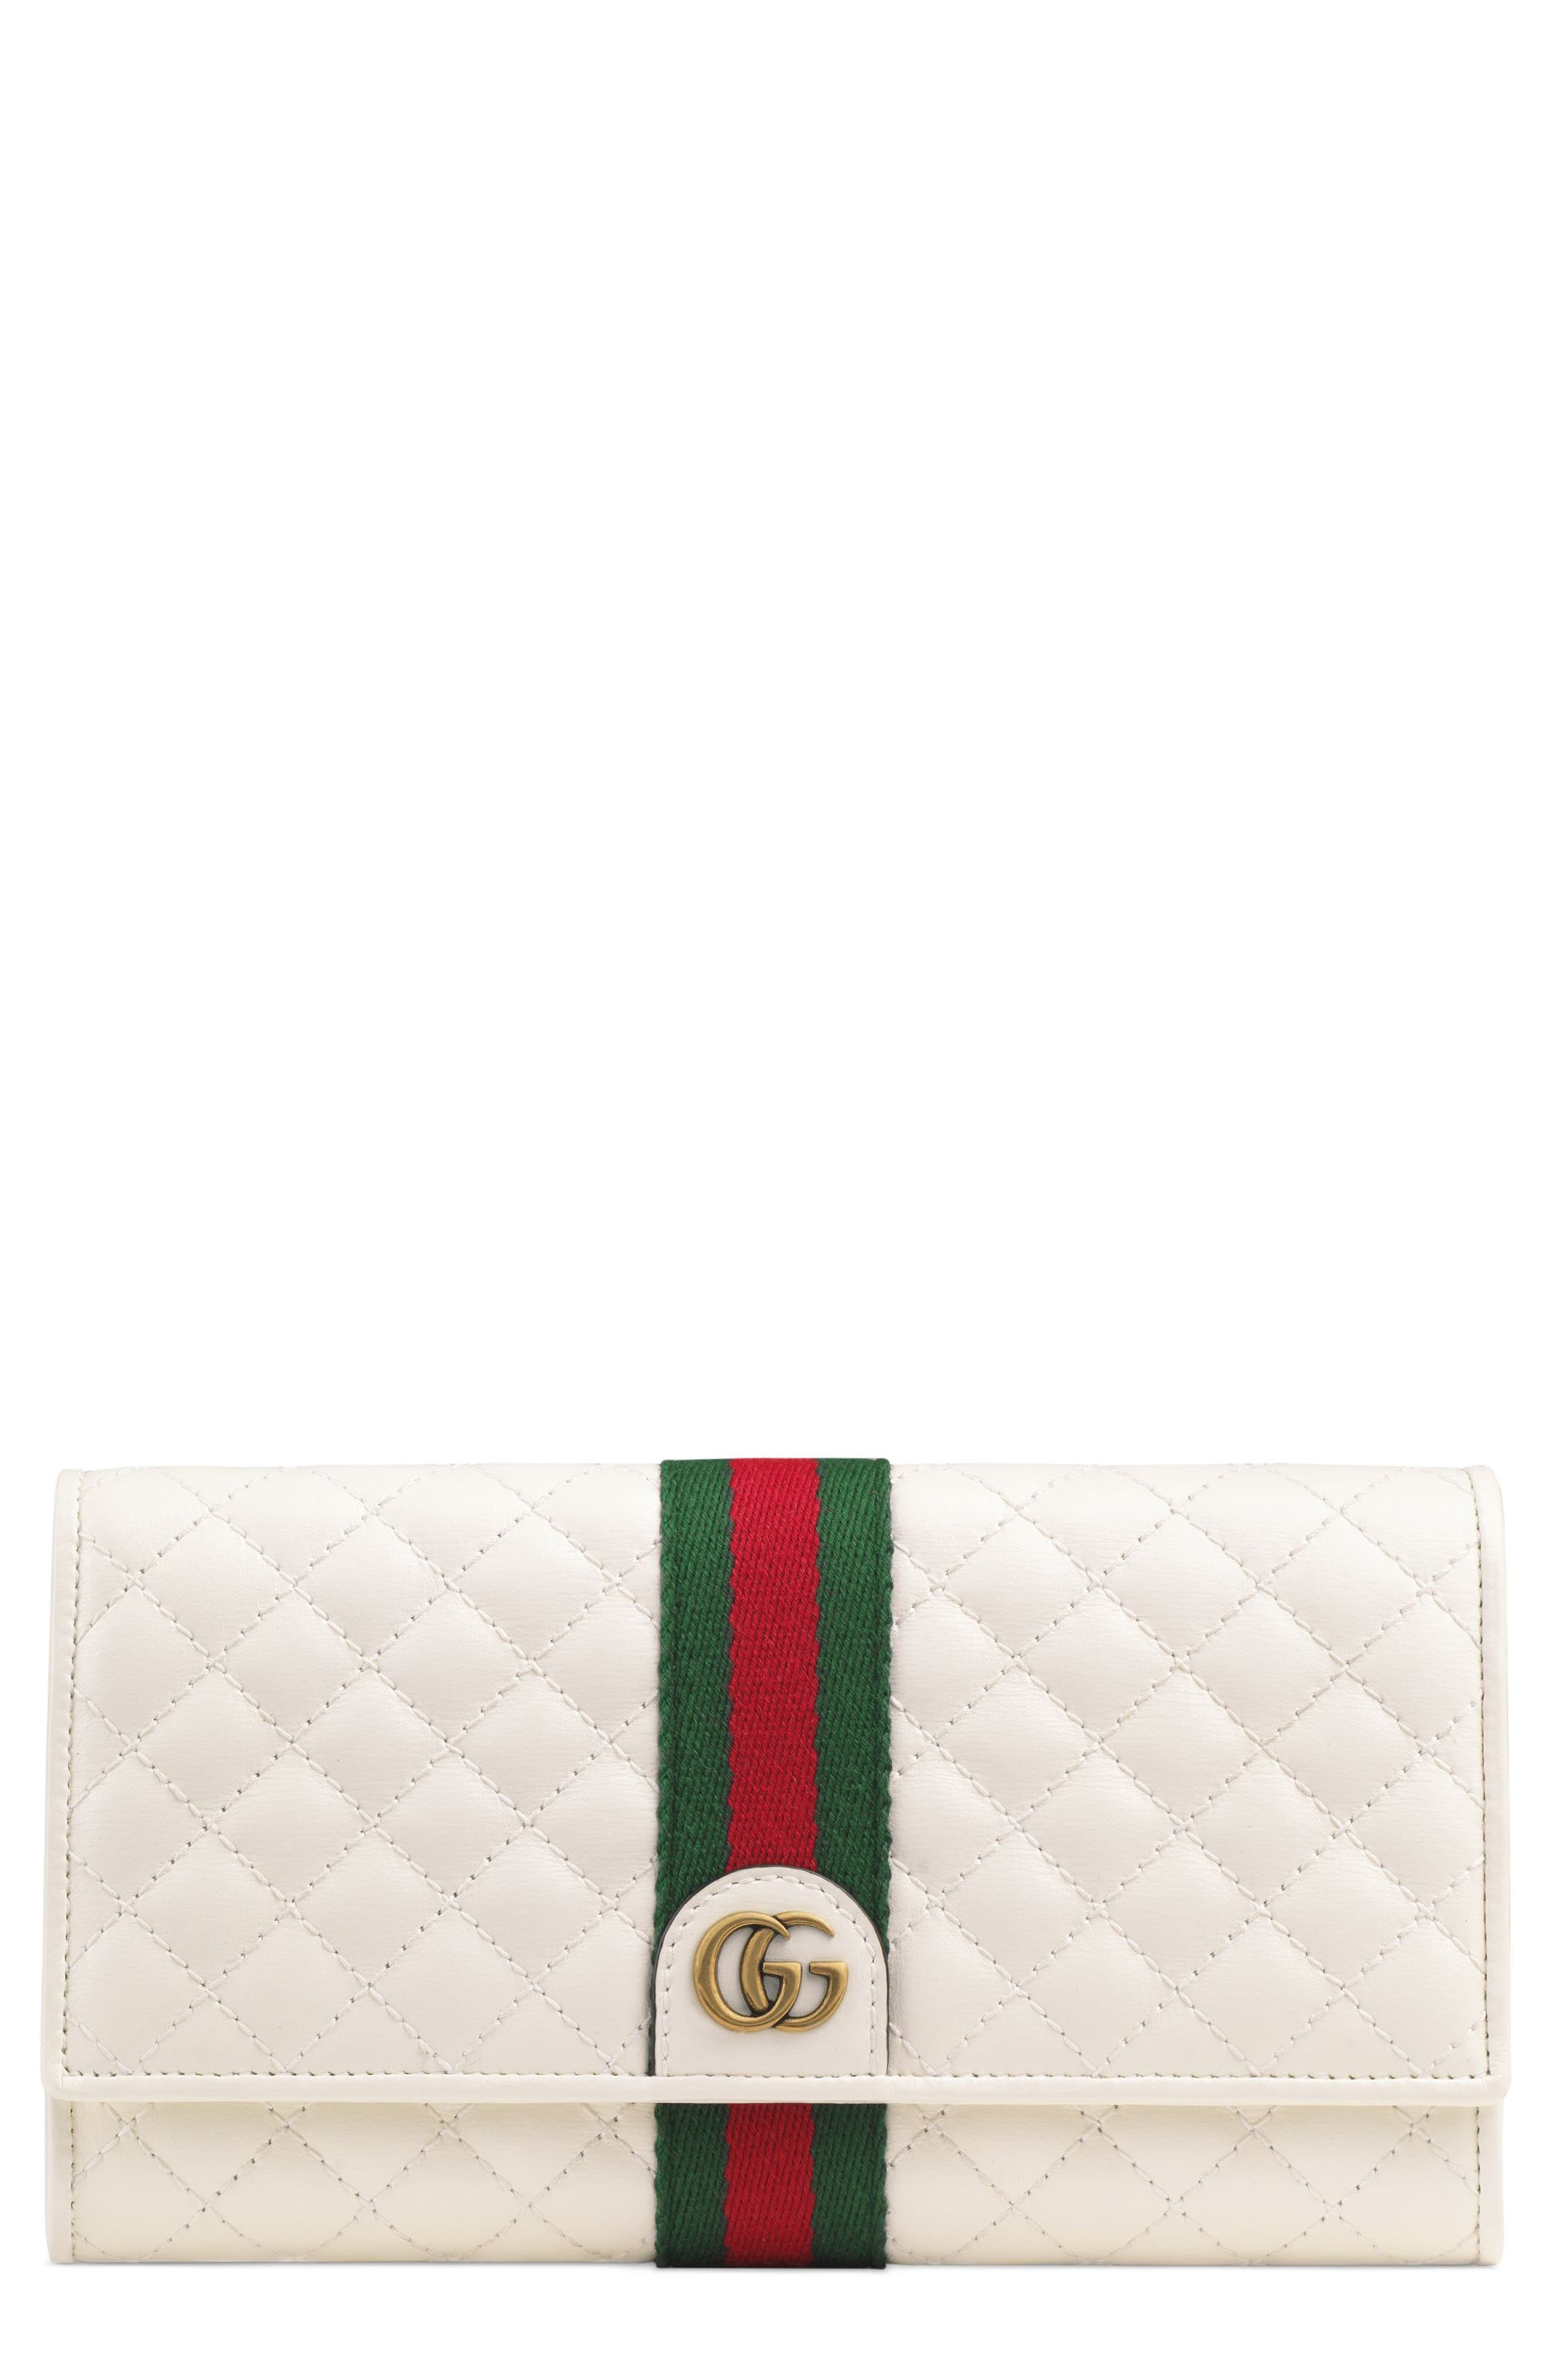 Quilted Leather Continental Wallet,                         Main,                         color, OFF WHITE/ VERT/ RED